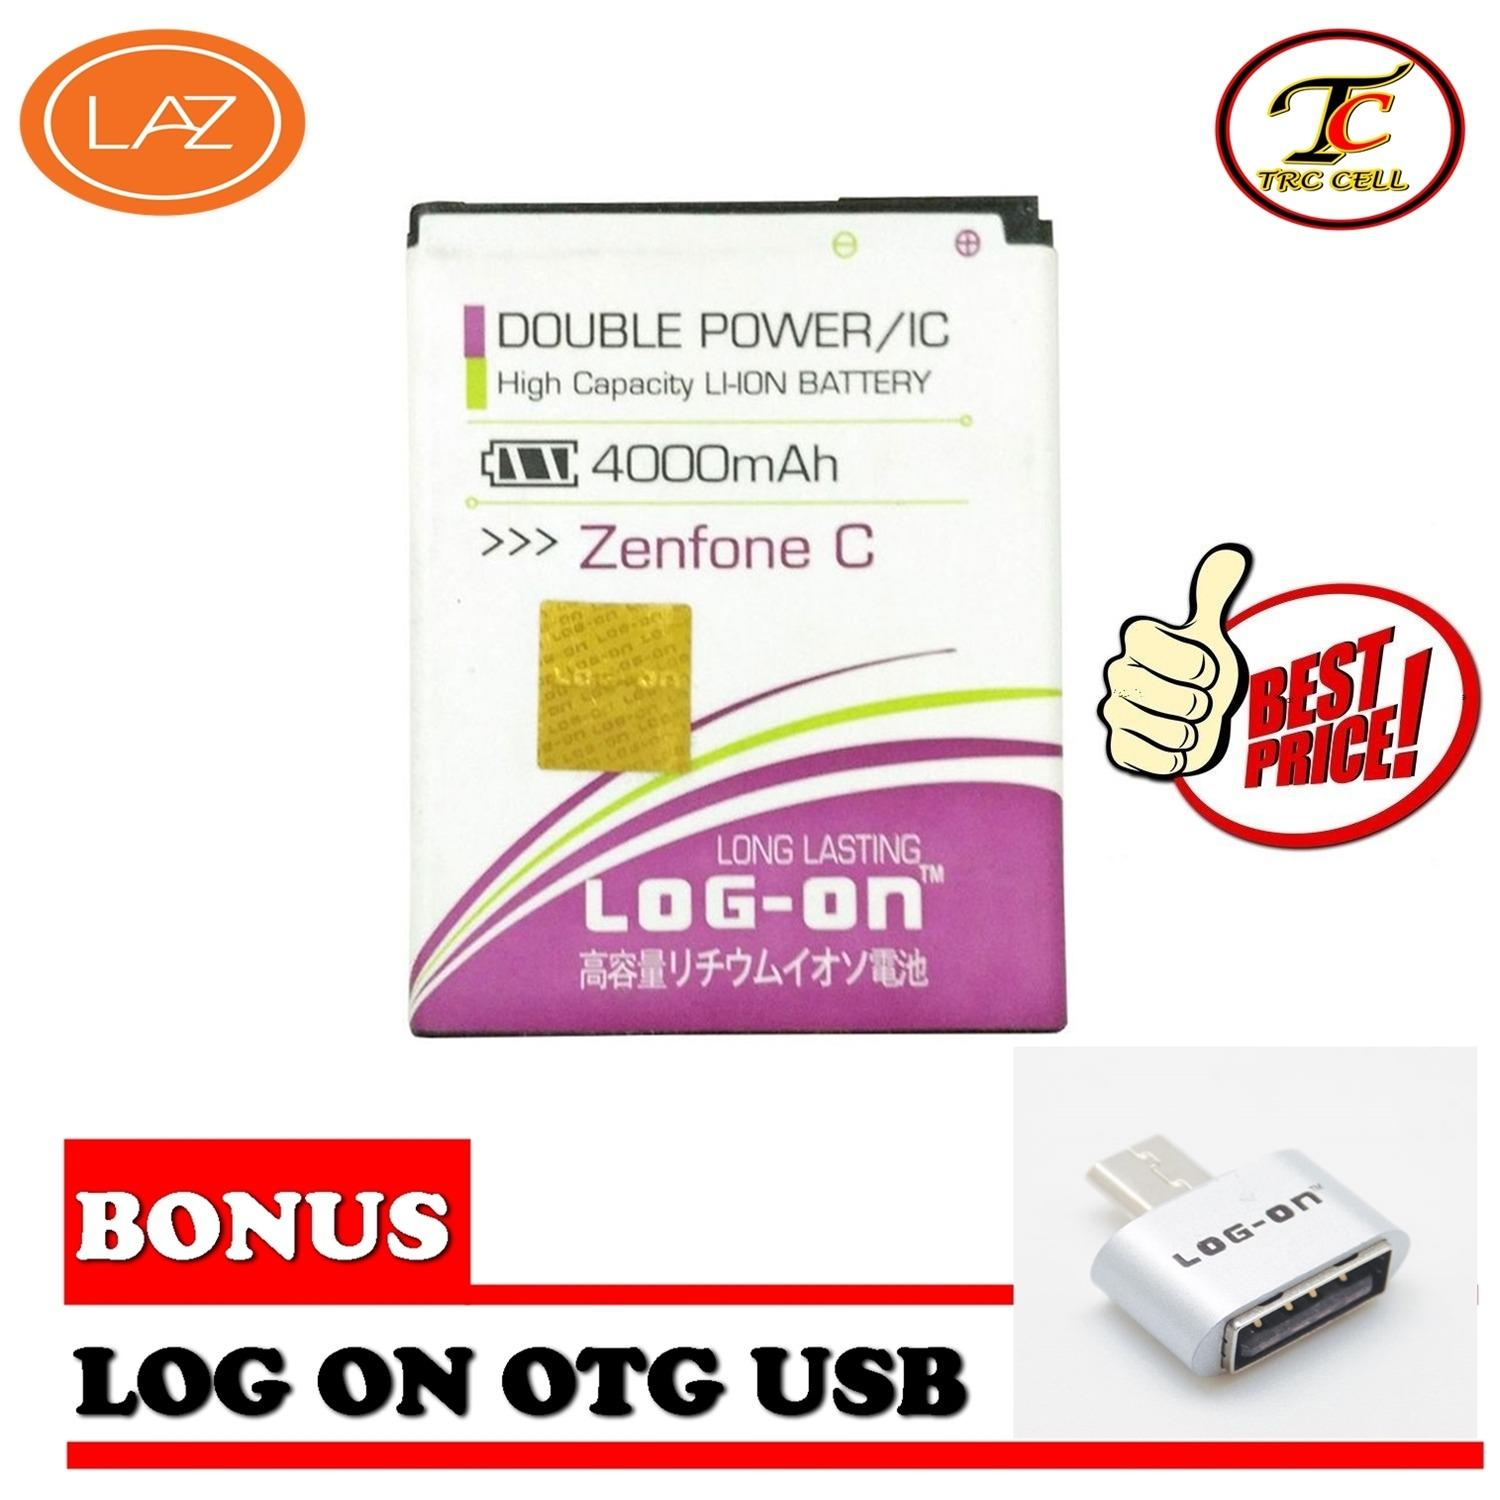 LOG-ON Battery Asus Zenfone C - Double Power & IC + FREE OTG Micro